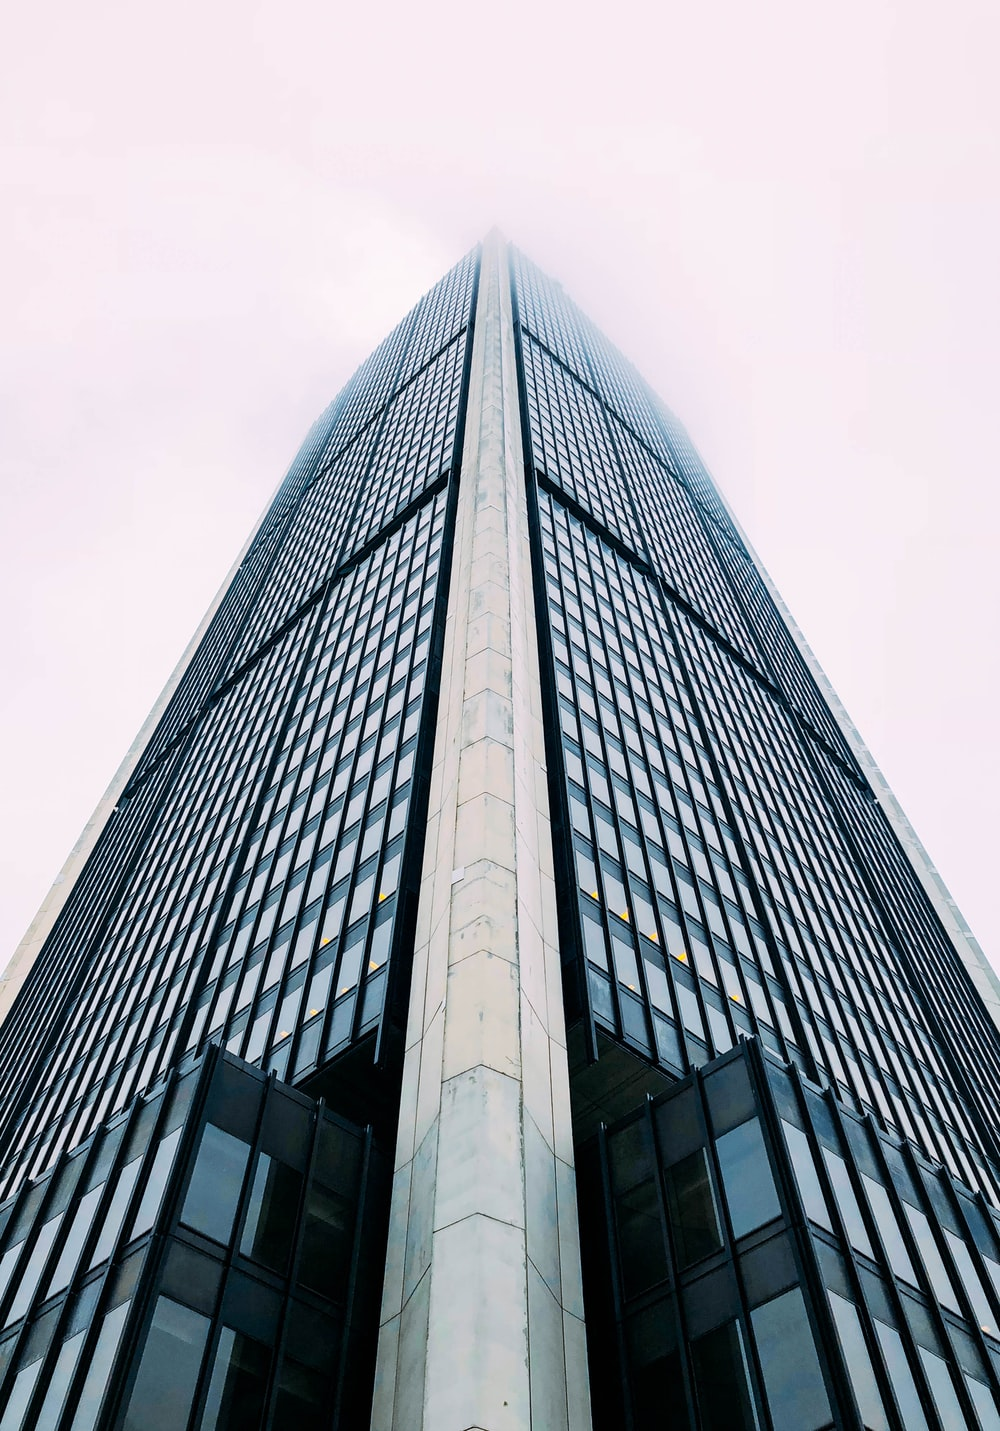 worm's eyeview of tall building